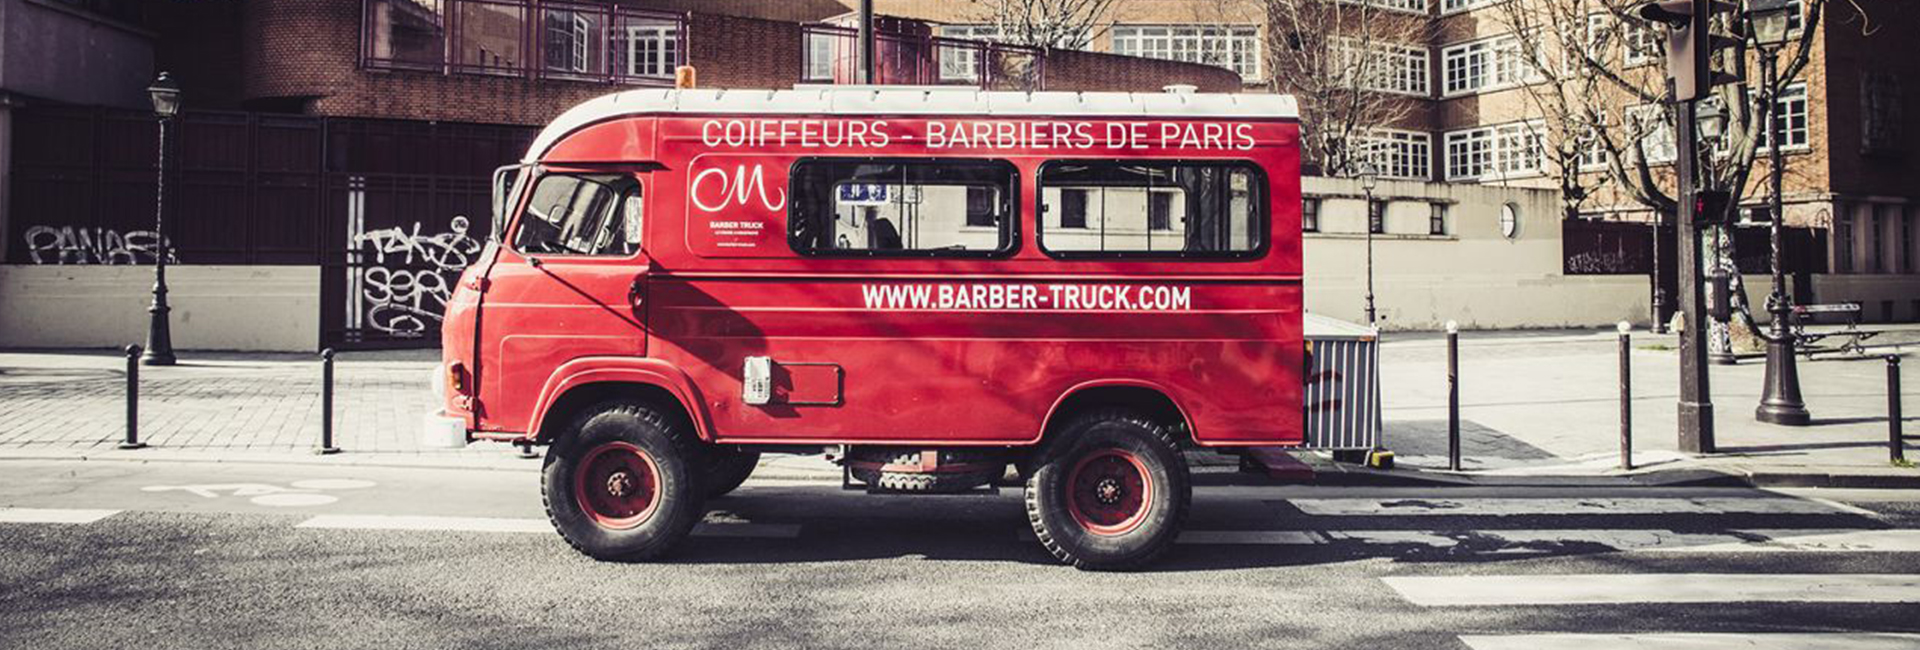 Barber truck Cigare à Moustache